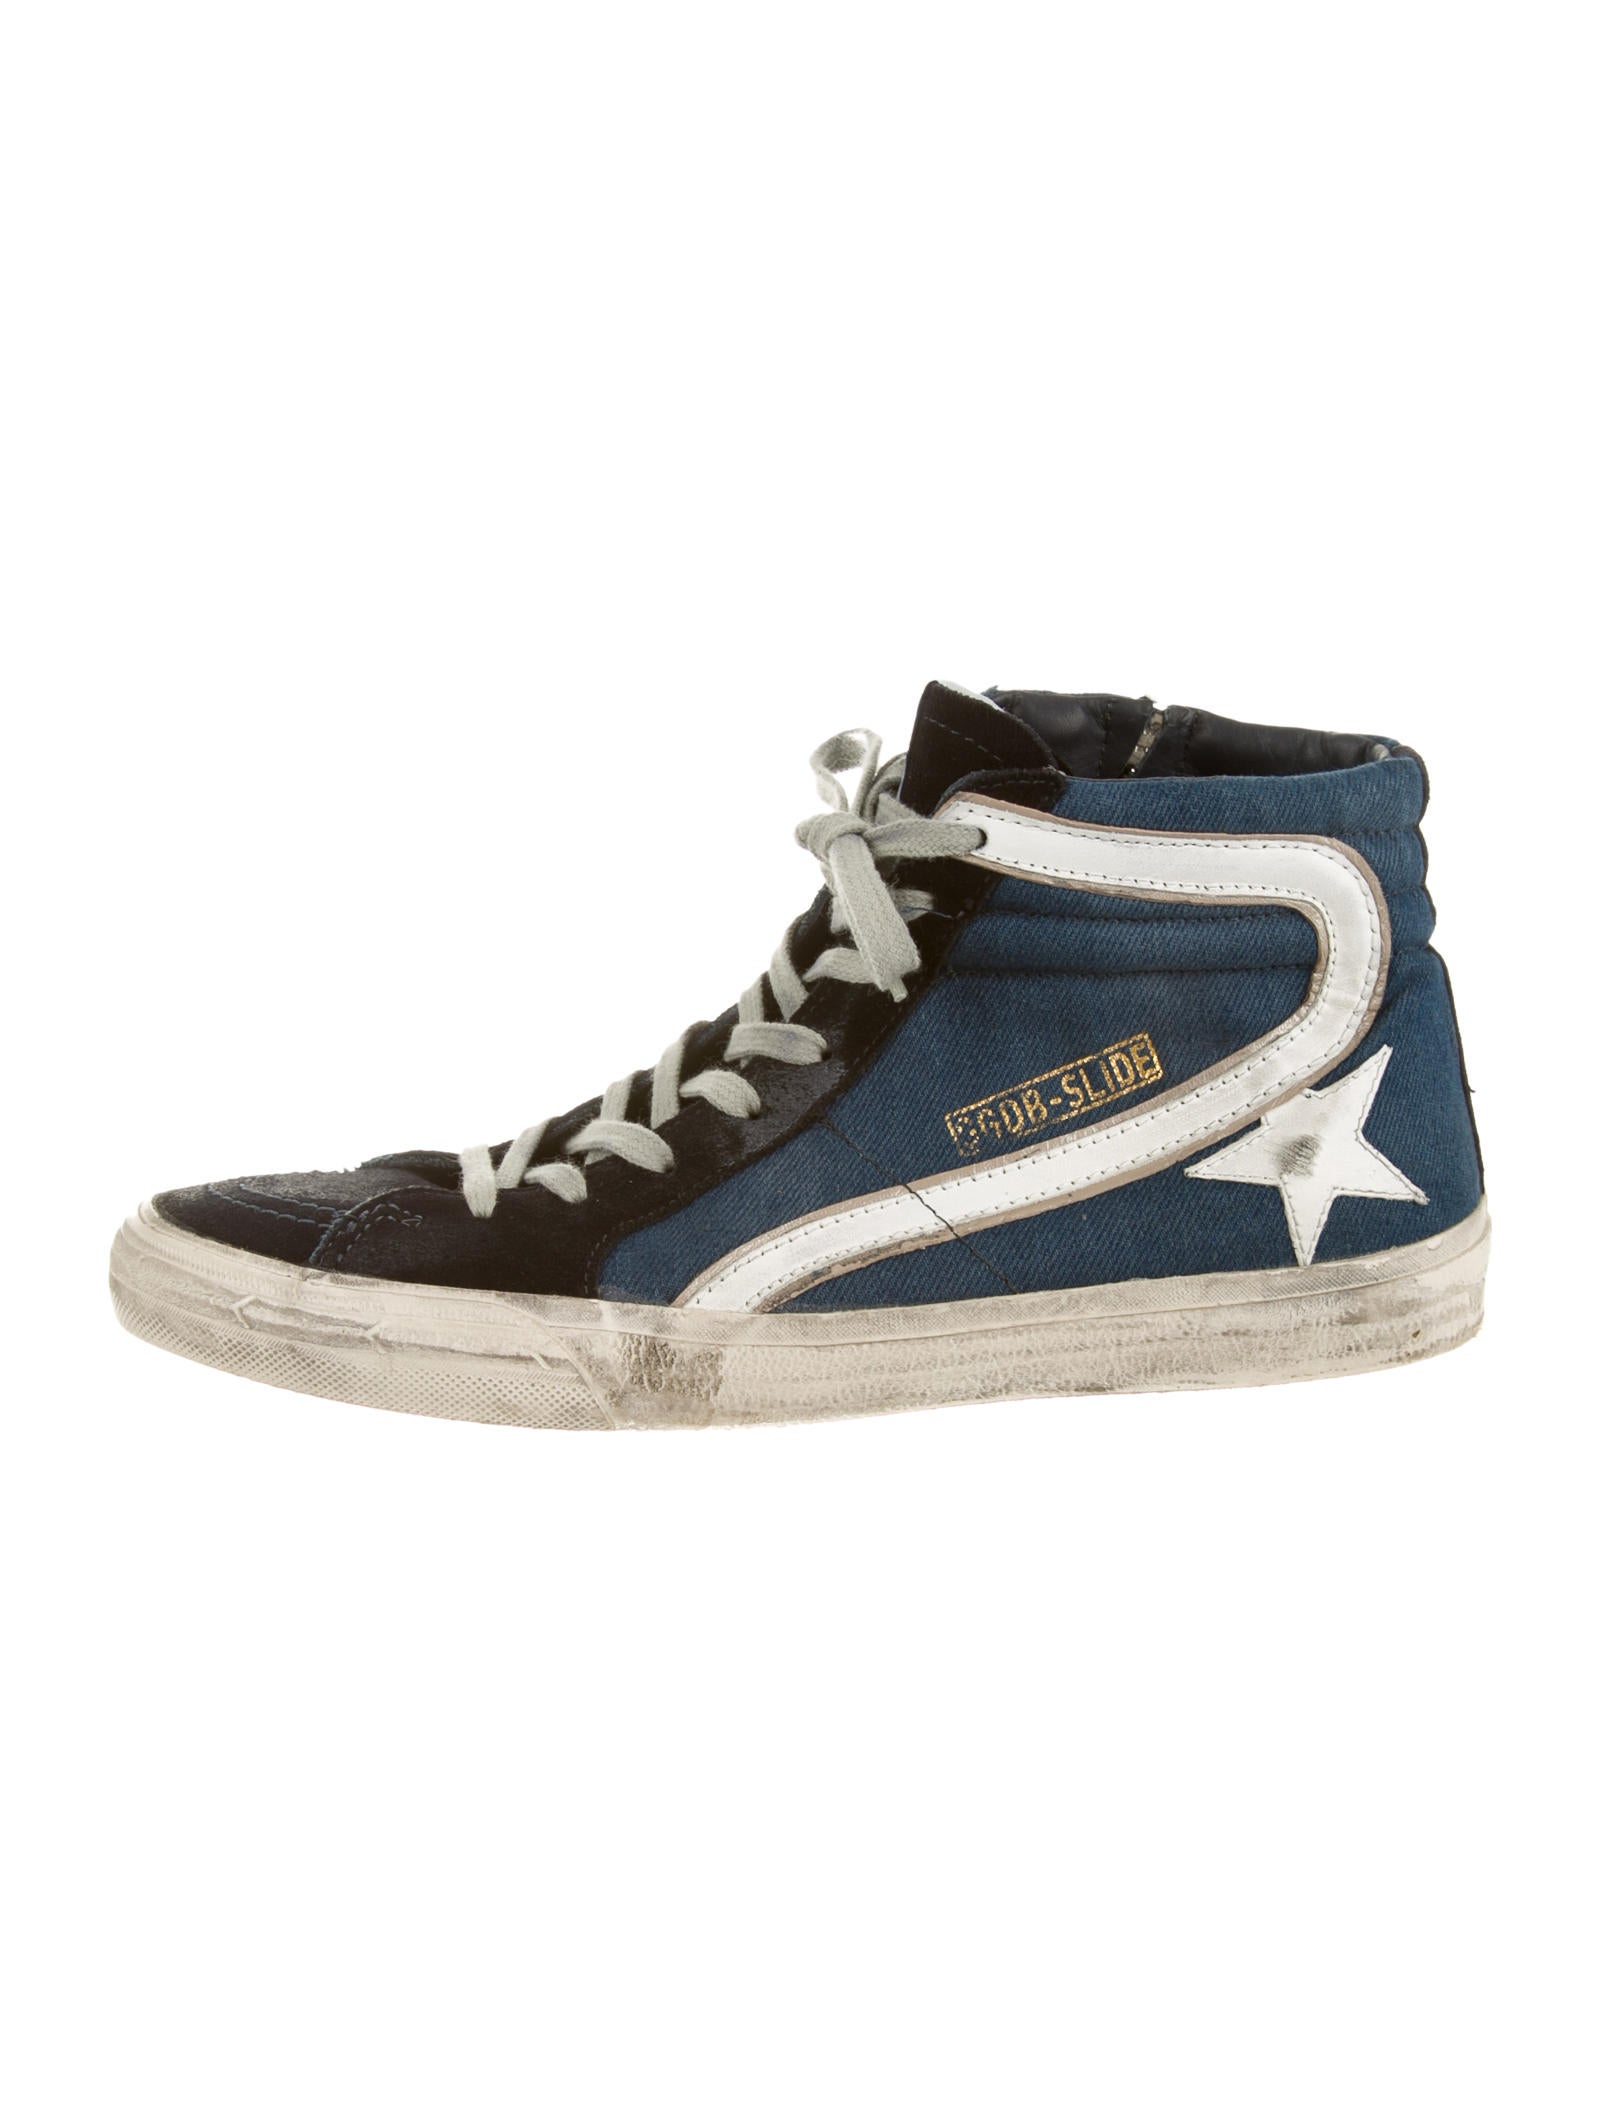 golden goose sneakers shoes wg520705 the realreal